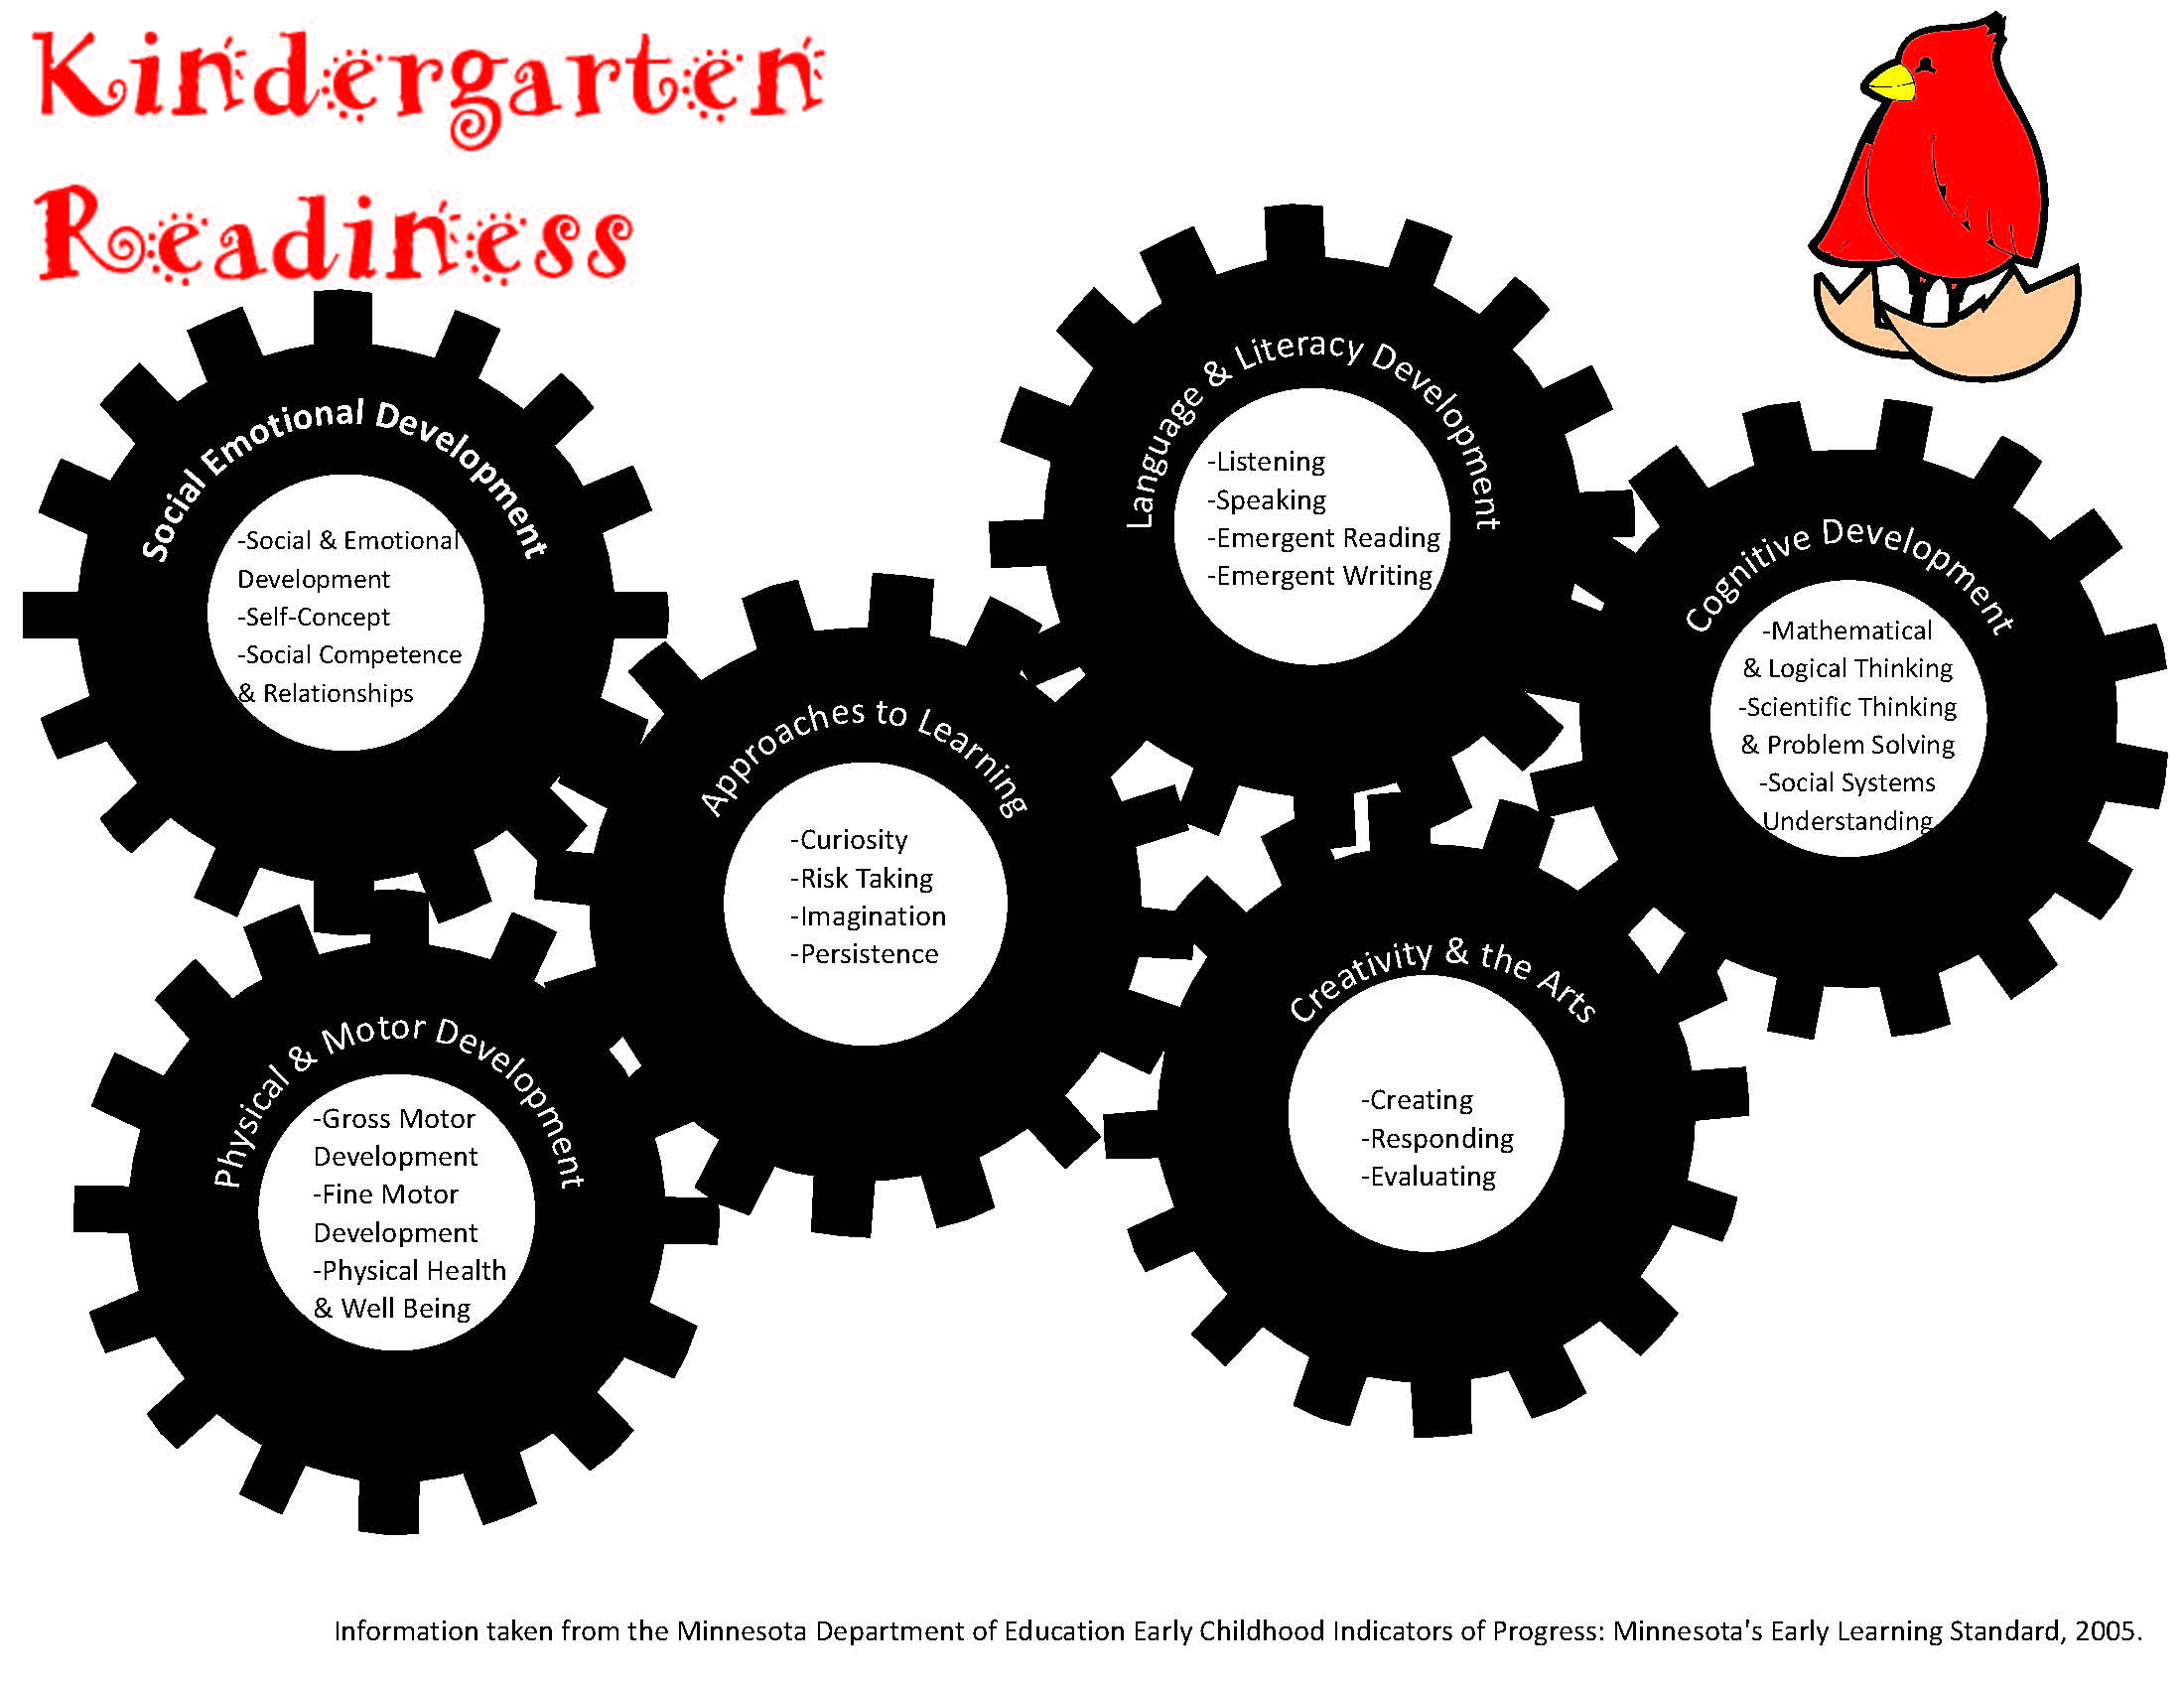 Kindergarten Readiness: Social and Emotional Development, Self Concept, Social Competance and Relationships, Gross Motor Development, Fine Motor Development, Physical Health & Well Being, Curiosity, Risk-Taking, Imagination, Persistence, Listening, Speaking, Emergent Reading, Emergent Writing, Creating, Responding, Evaluating, Mathematical & Logical Thinking, Scientific Thinking & Problem Solving, Social Systems Understanding